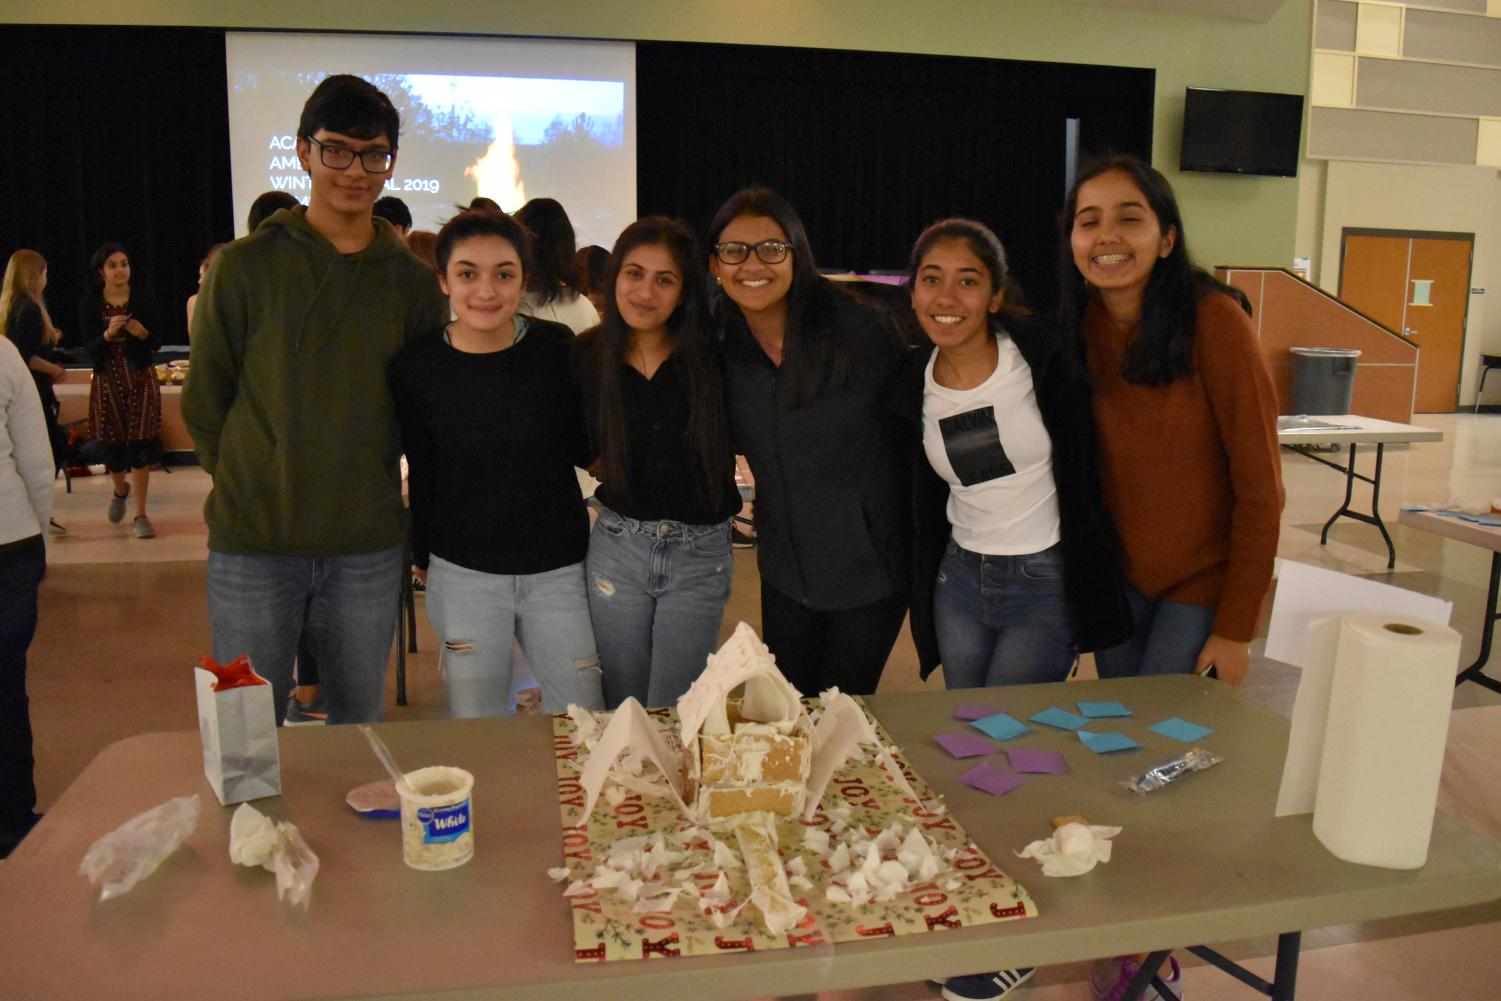 A+team+in+the+gingerbread+house+contest+poses+with+their+finished+product.+After+voting+from+all+the+ambassadors%2C+the+team+was+crowned+the+winner+of+the+competition.